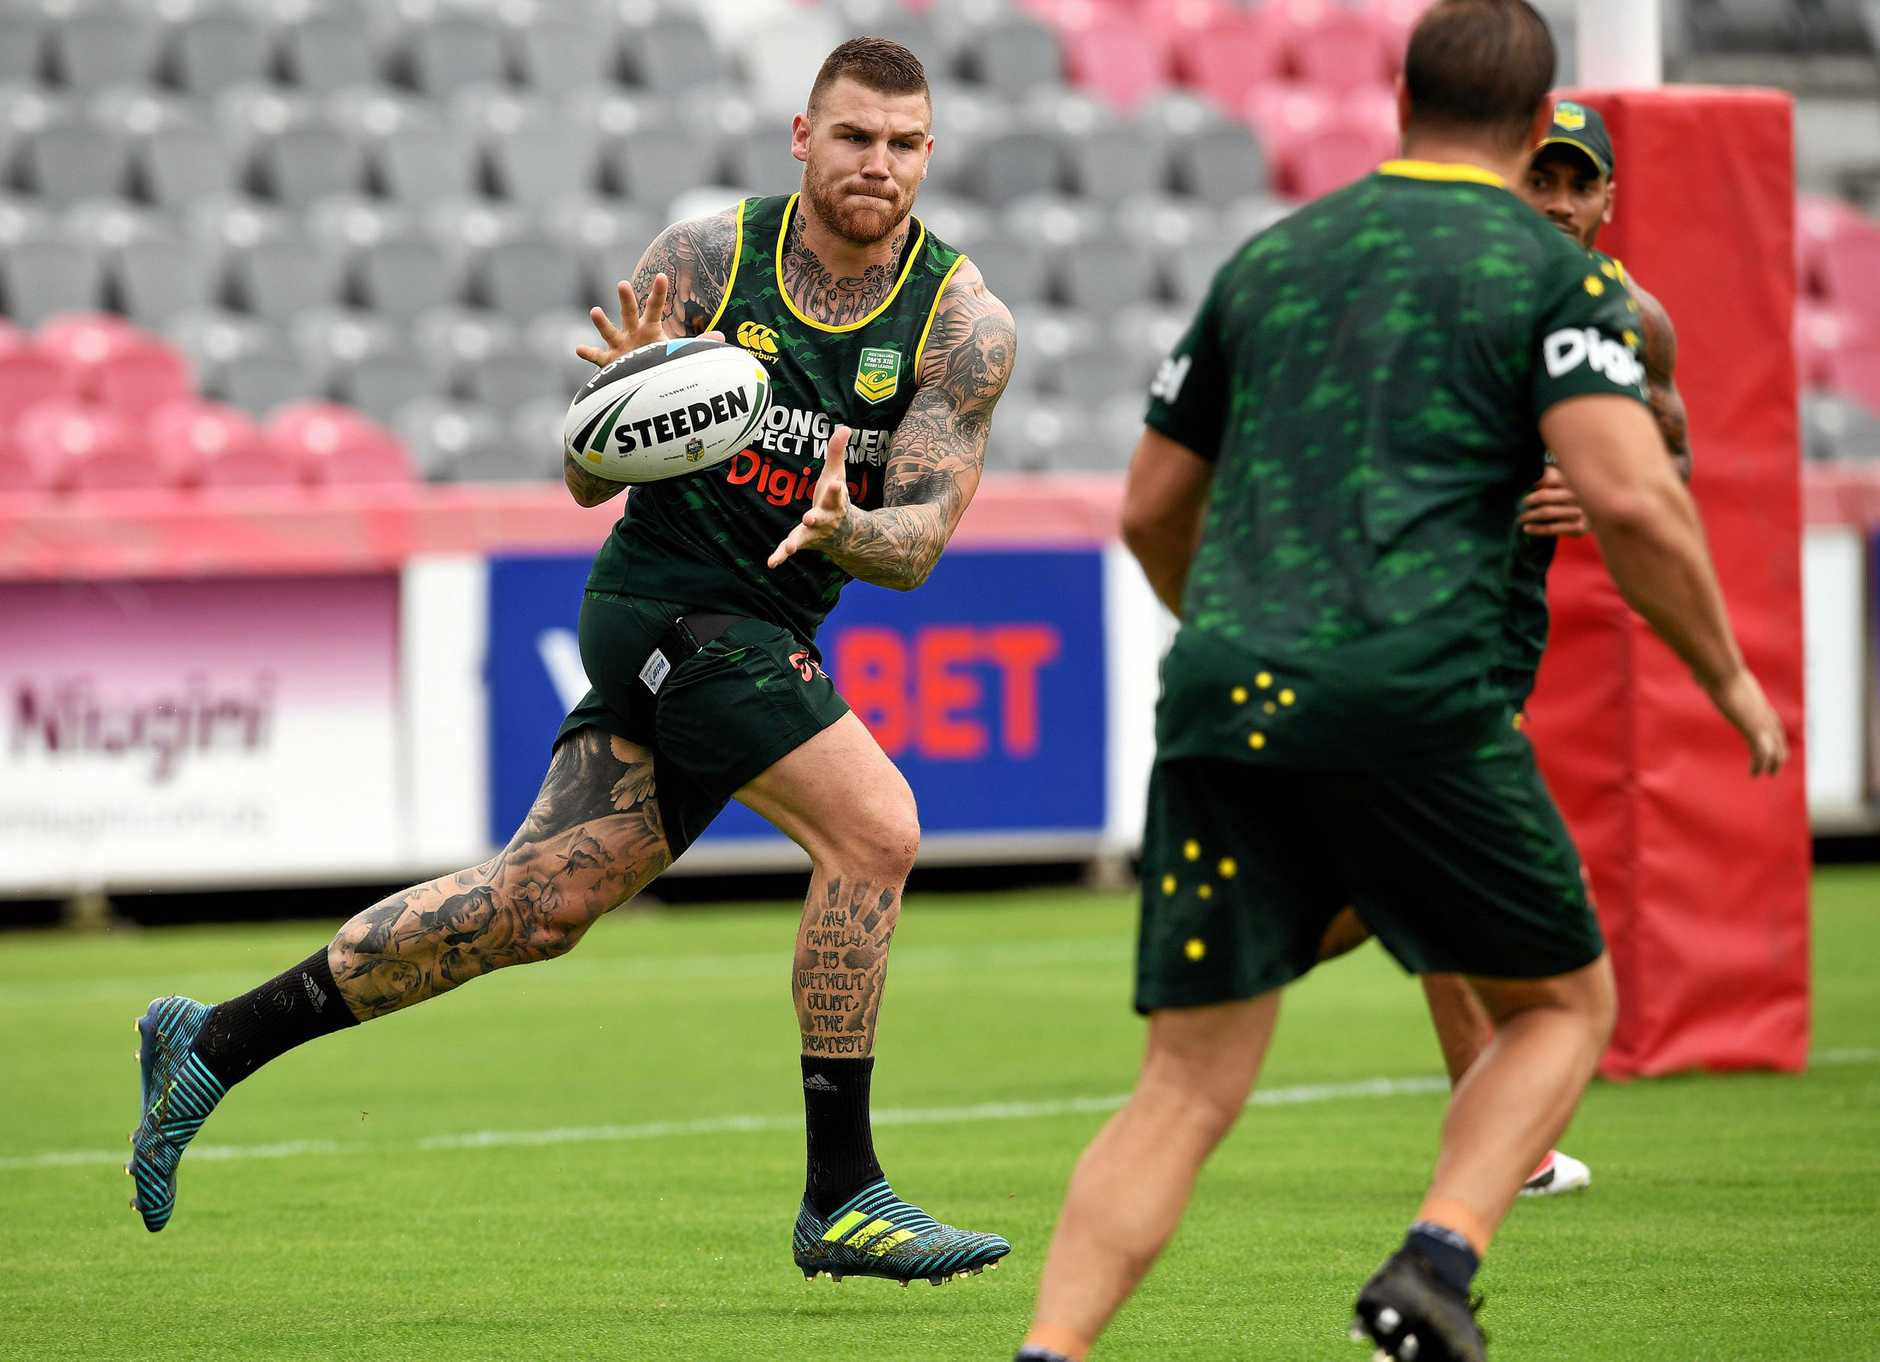 Josh Dugan is a potential No.1 for the Sharks. (AAP Image/NRL)